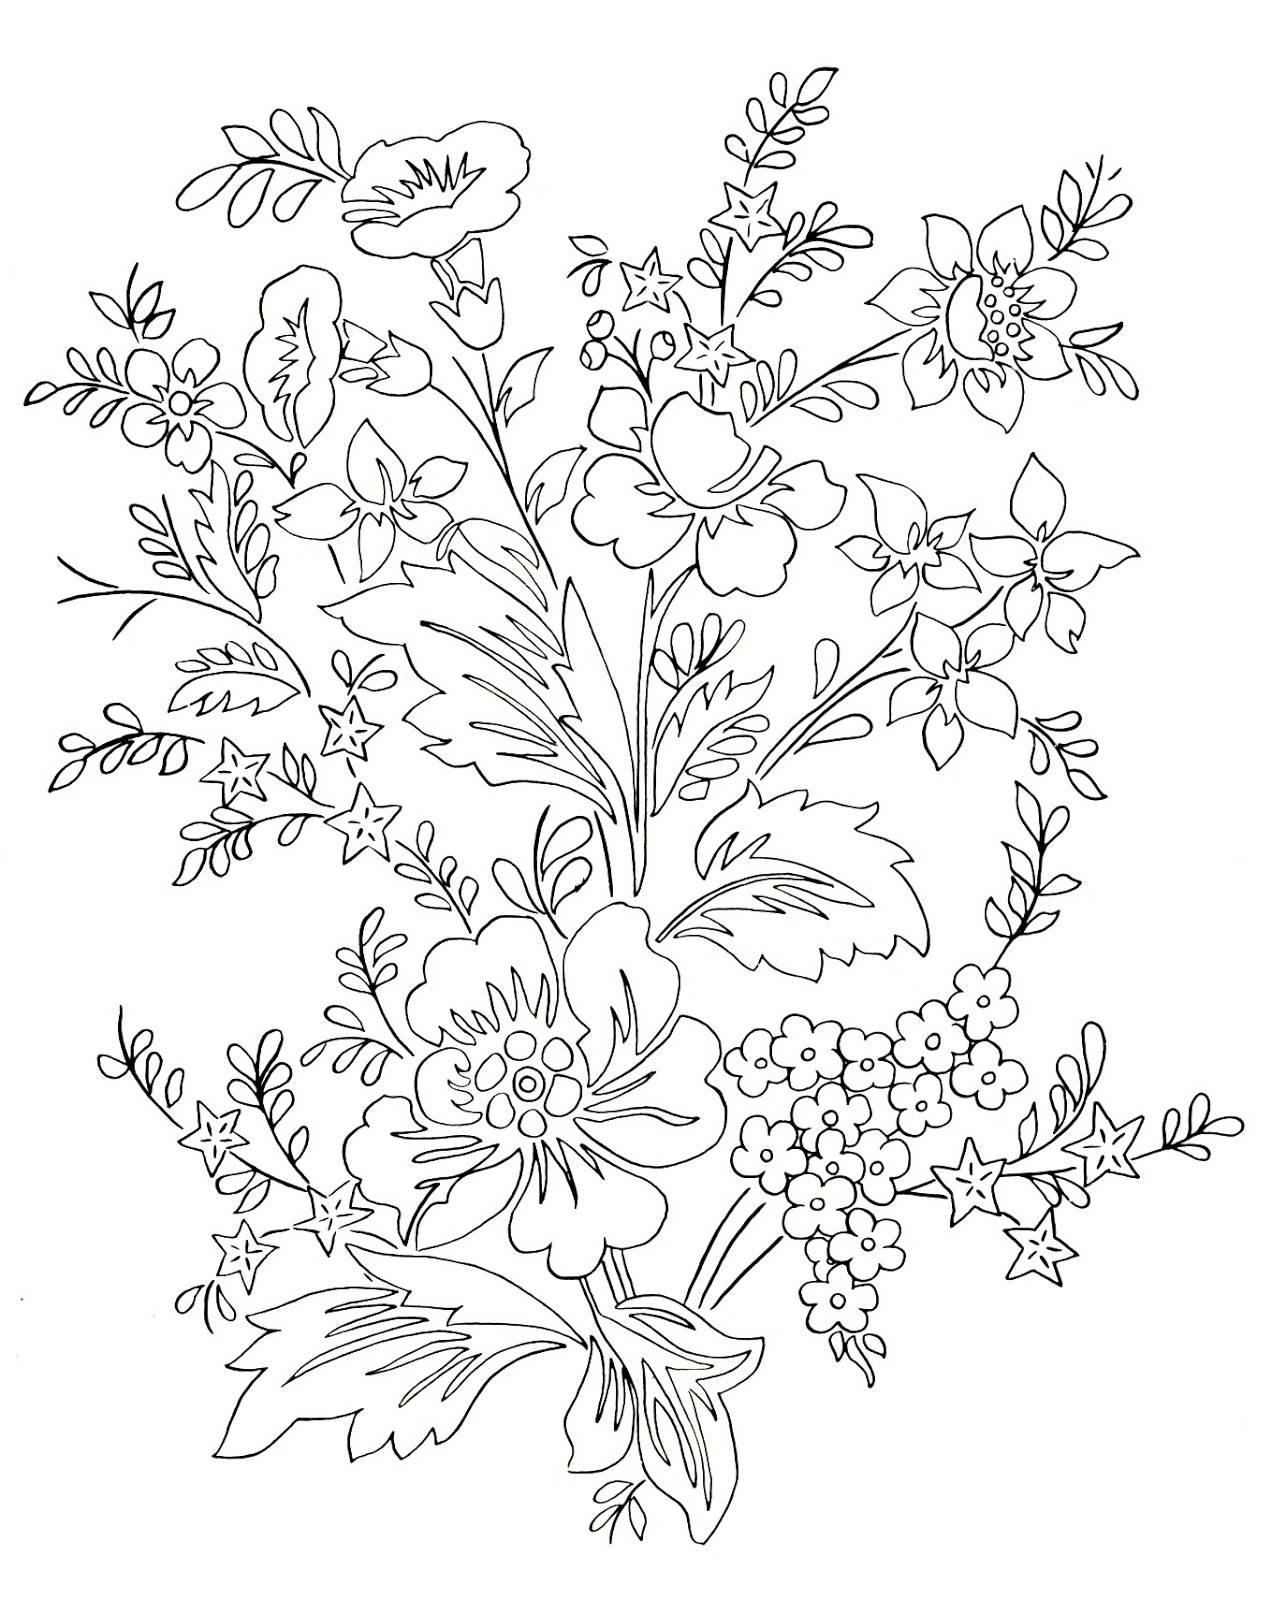 1272x1600 Forget Me Not Flowers Sketch Coloring Page View Larger Image